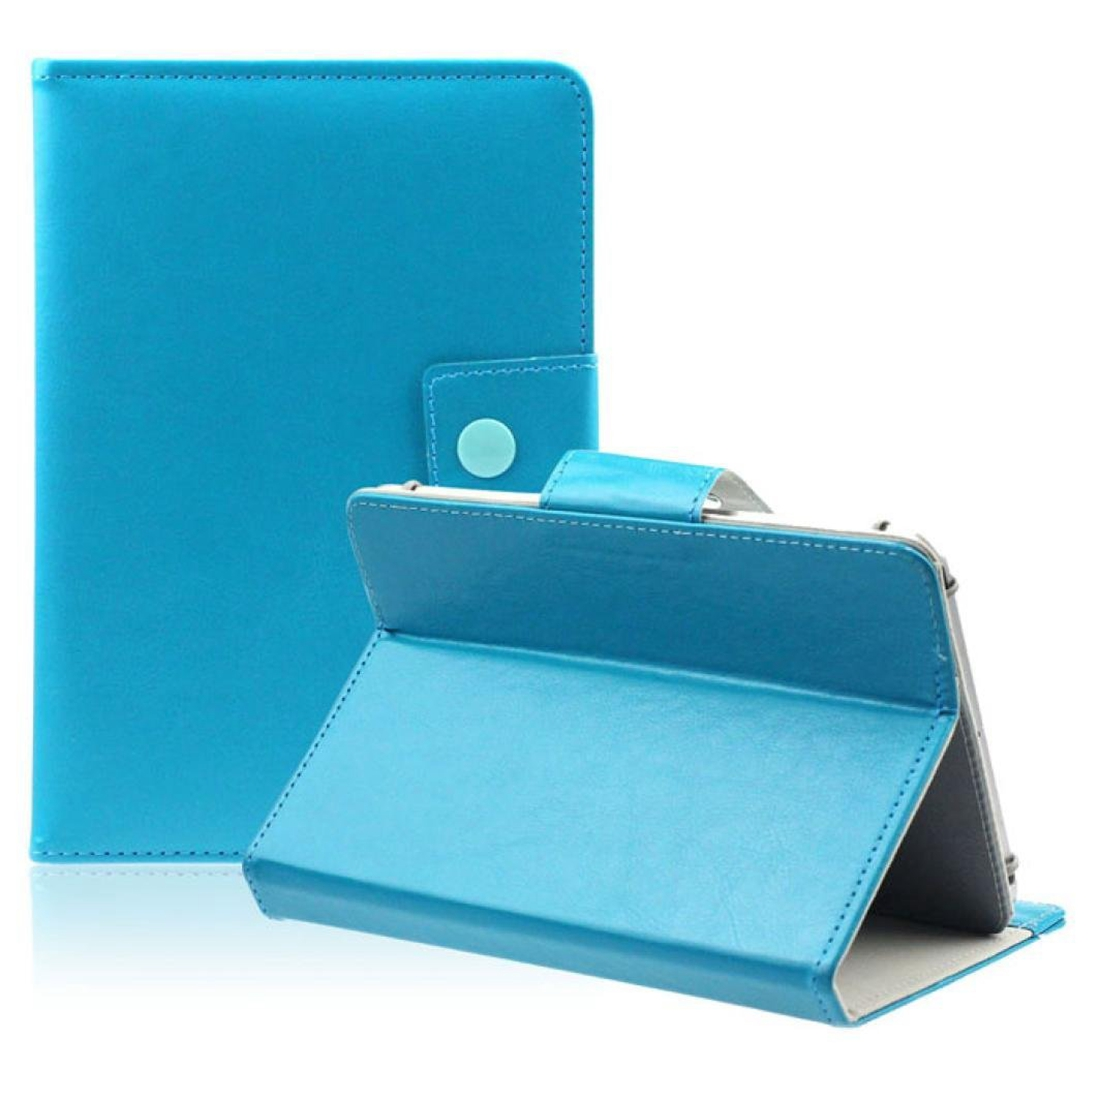 10 Inch Universal Tablet PC Case Crystal PU Leather Support Case Blue